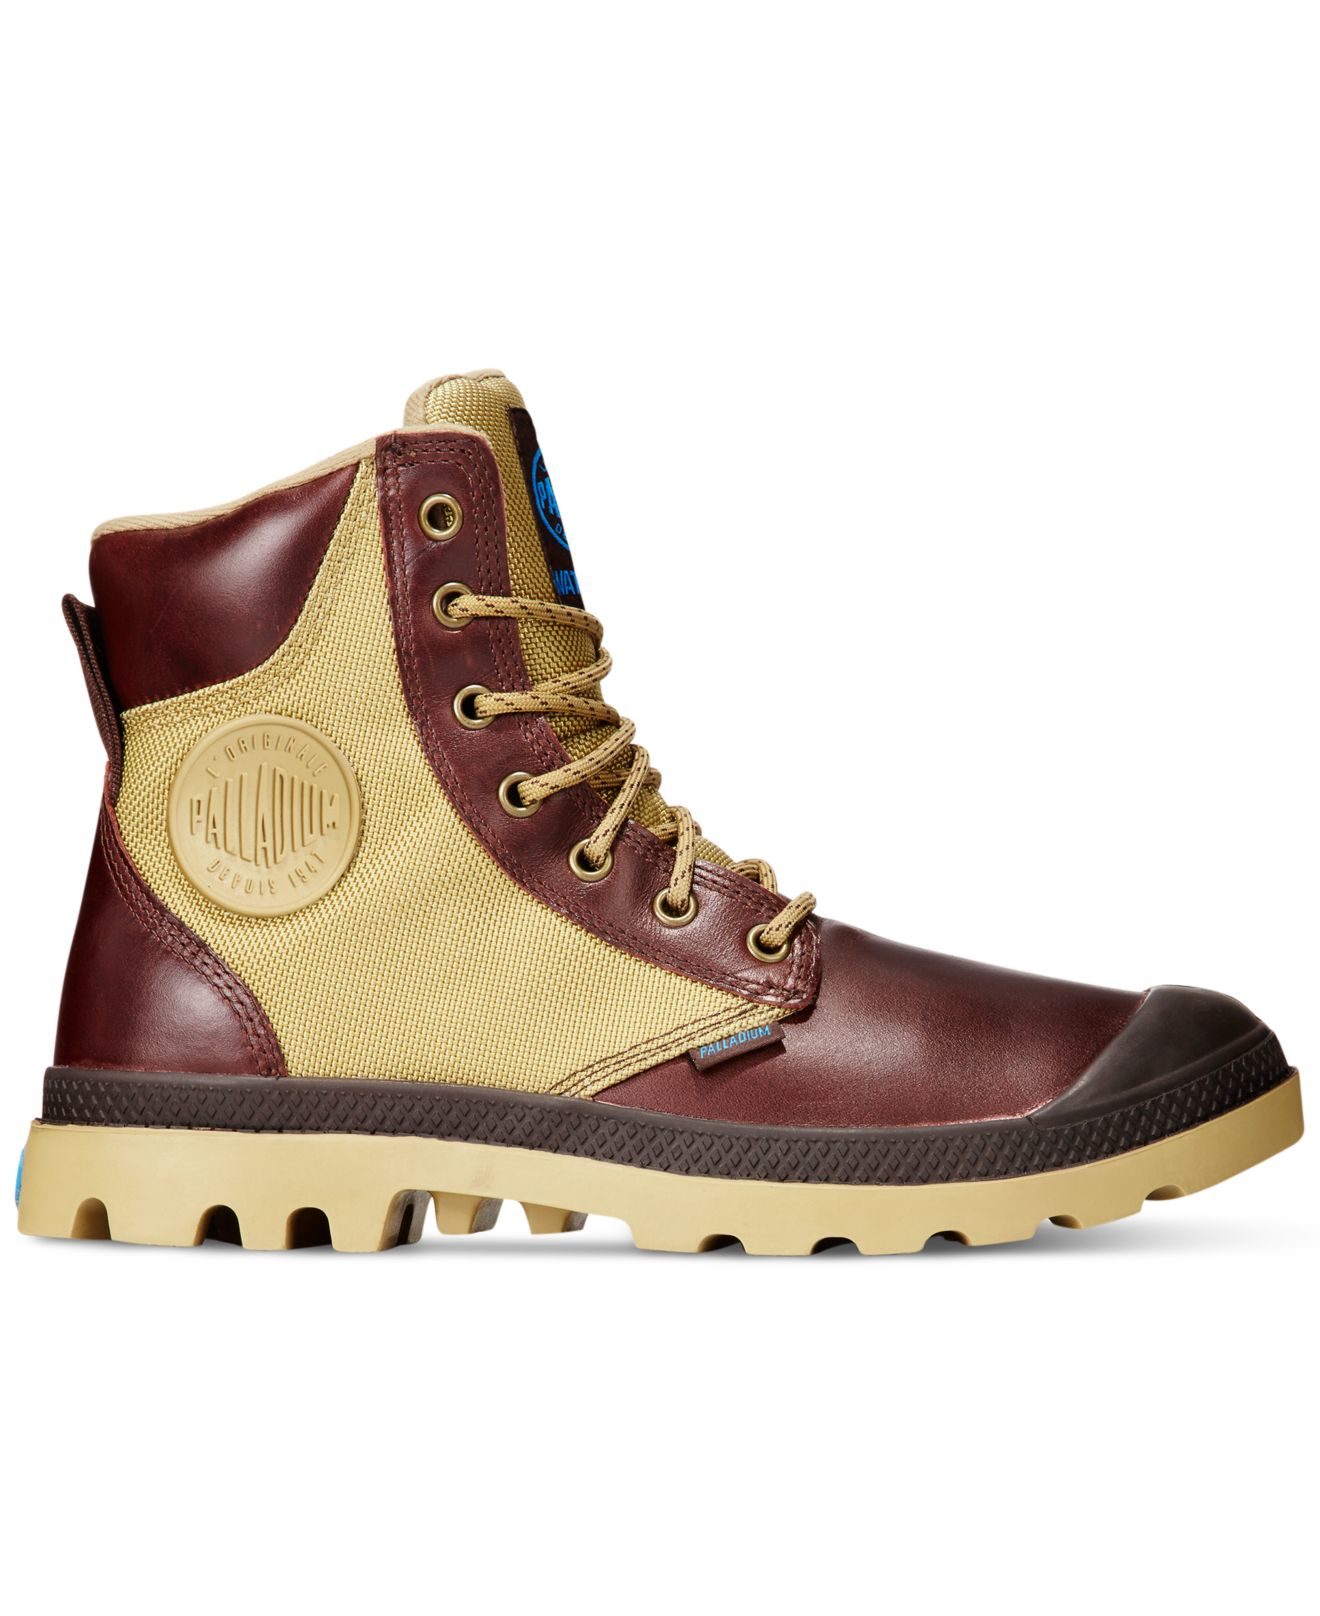 Palladium Pampa Sport Cuff Waterproof Boots In Brown For